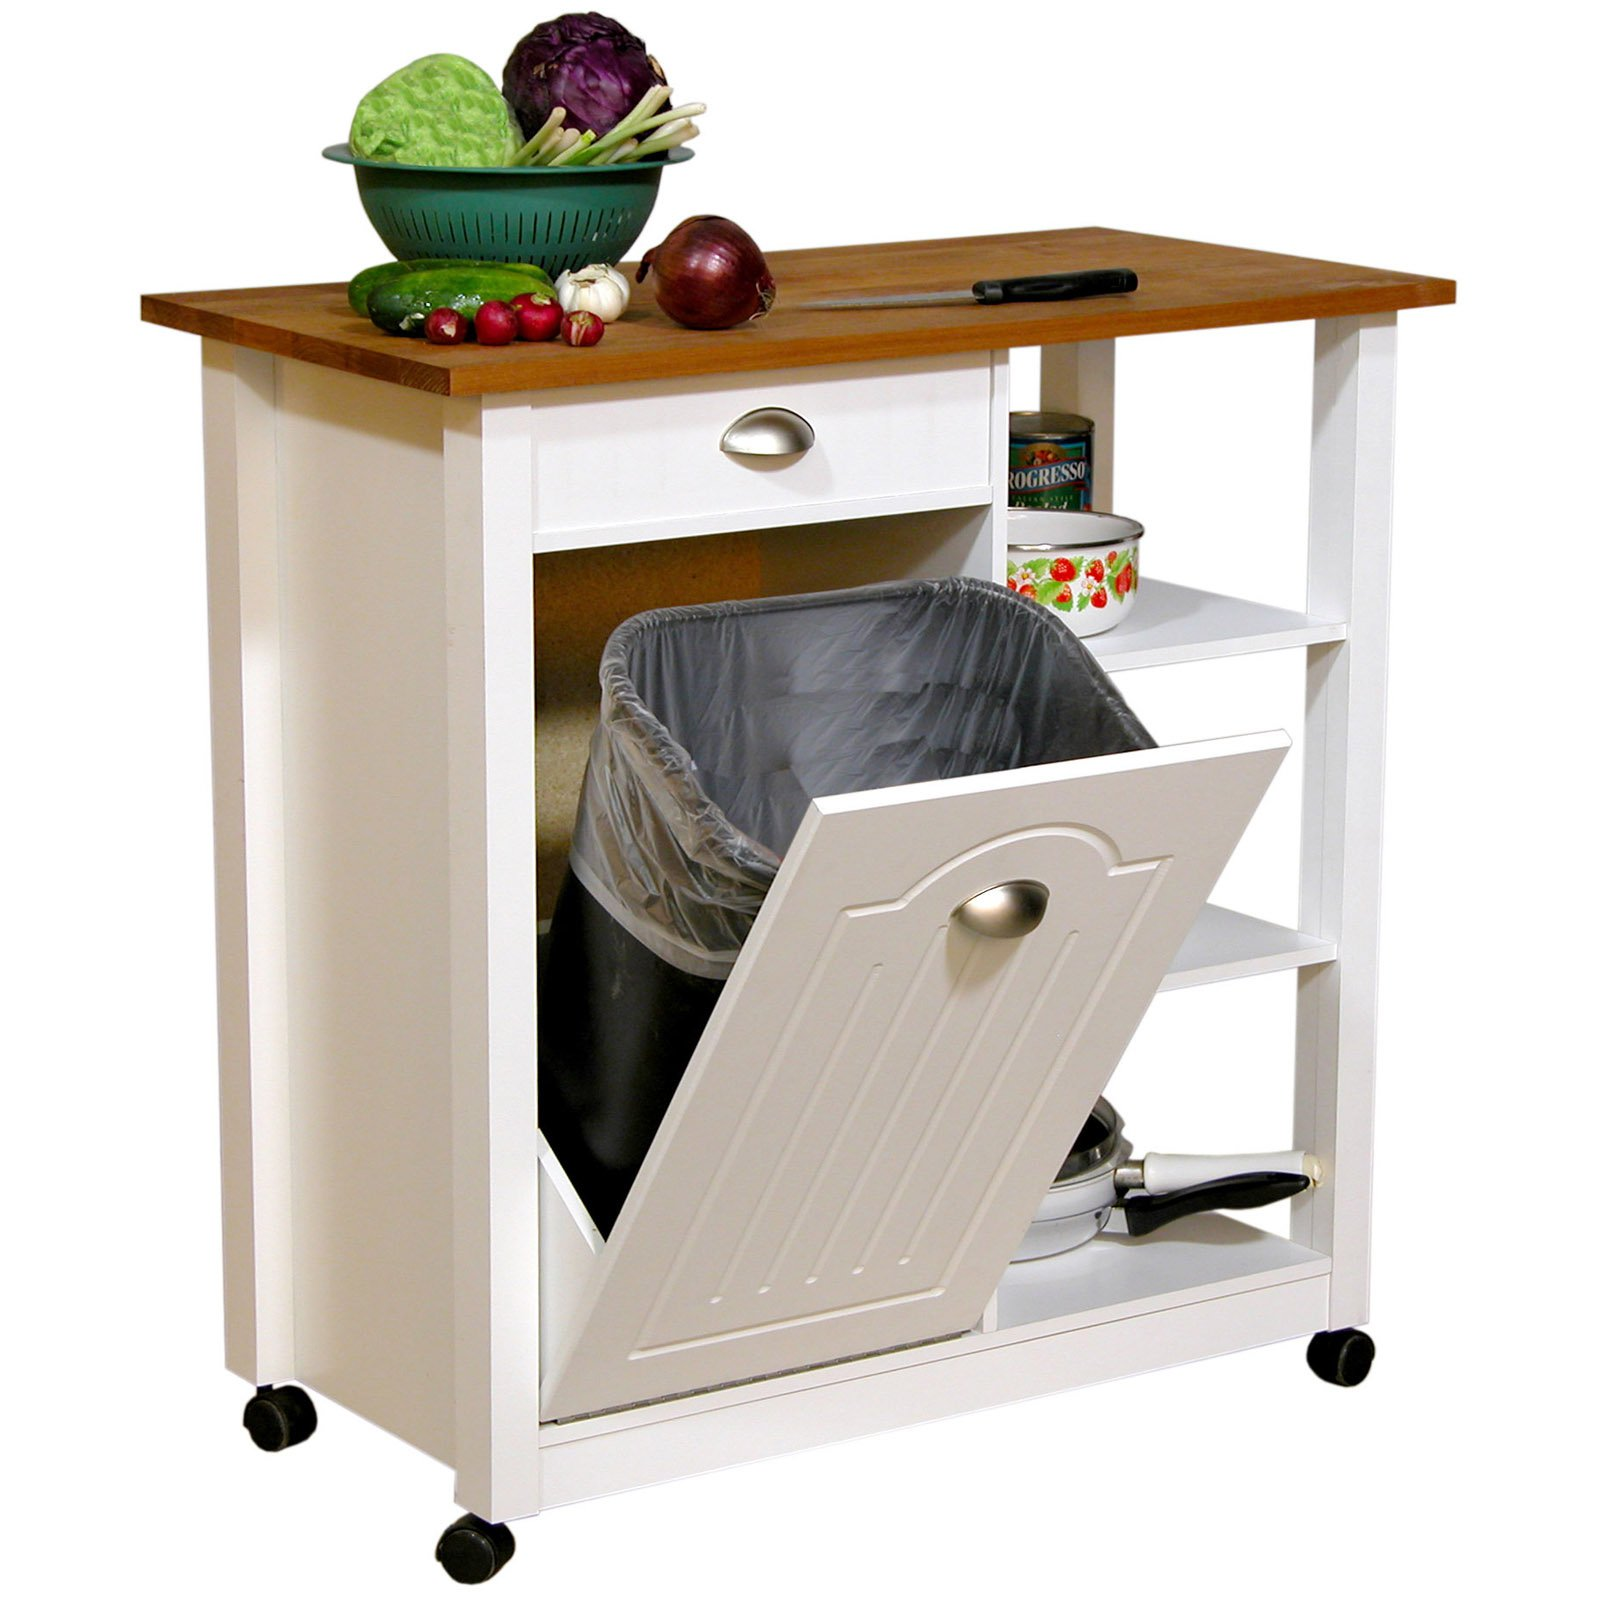 Movable Kitchen Islands Plans Kitchen Carts On Wheels Movable Meal Preparation And